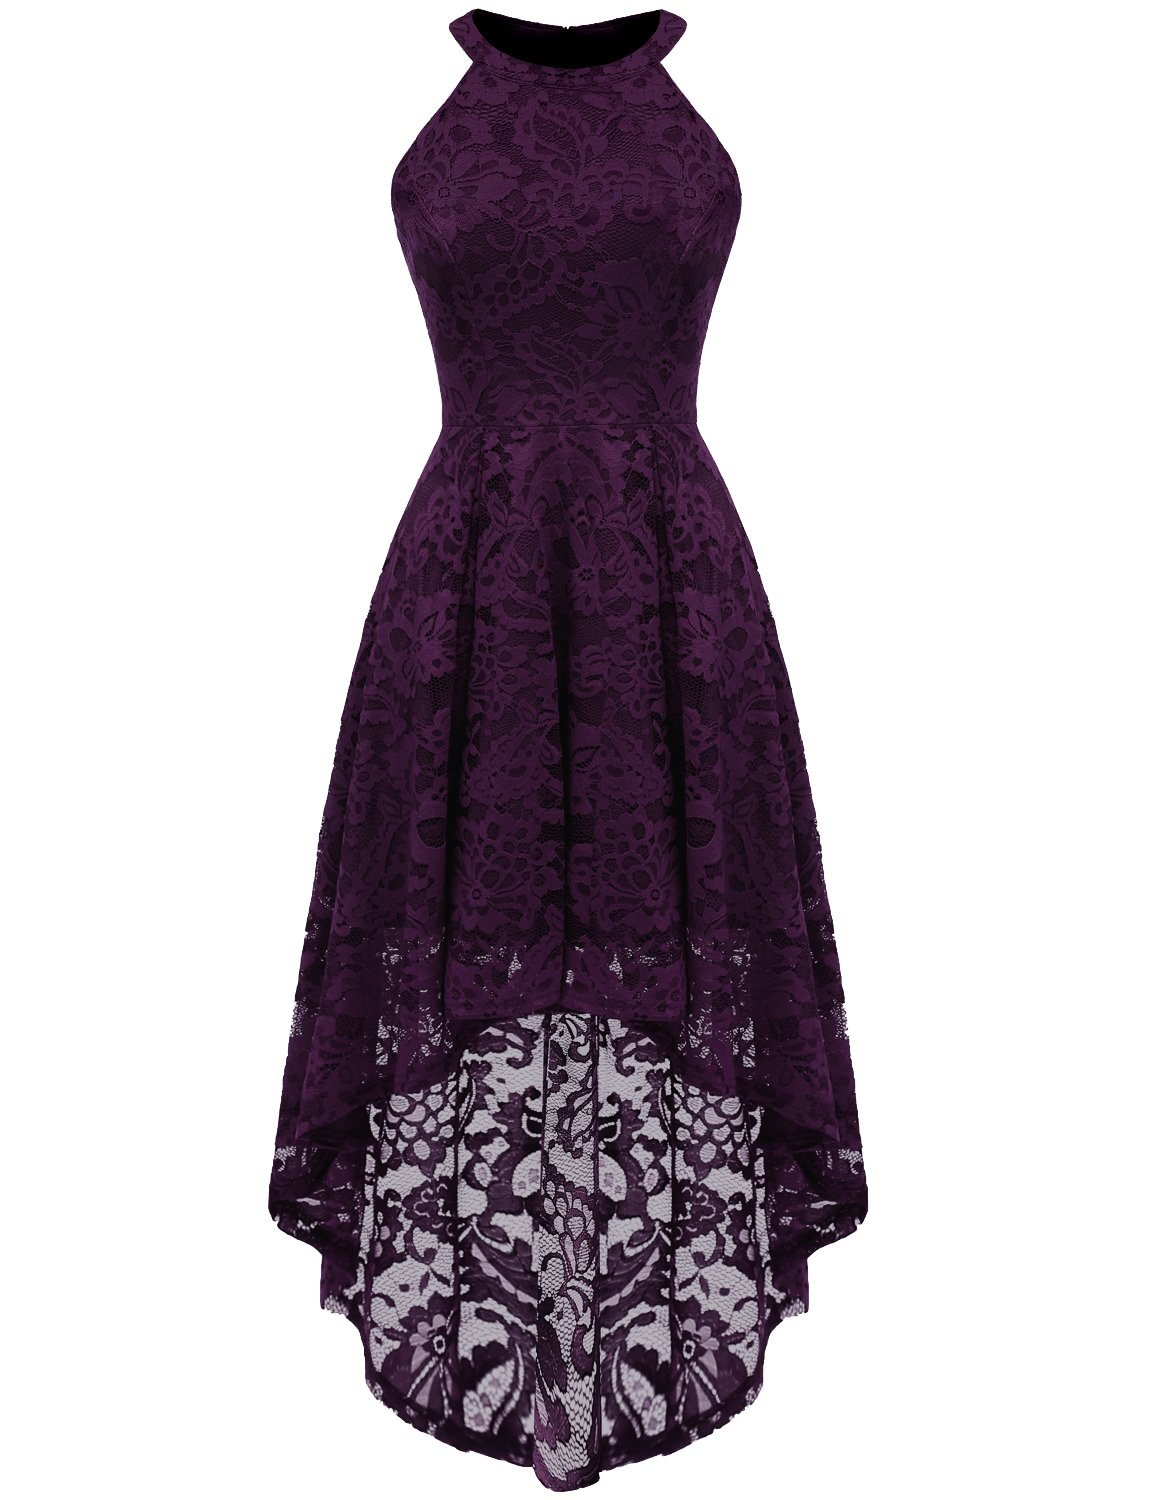 Wedding Guest Dresses - Women's Chic V-Neck Lace Patchwork Flare Party Dress A062